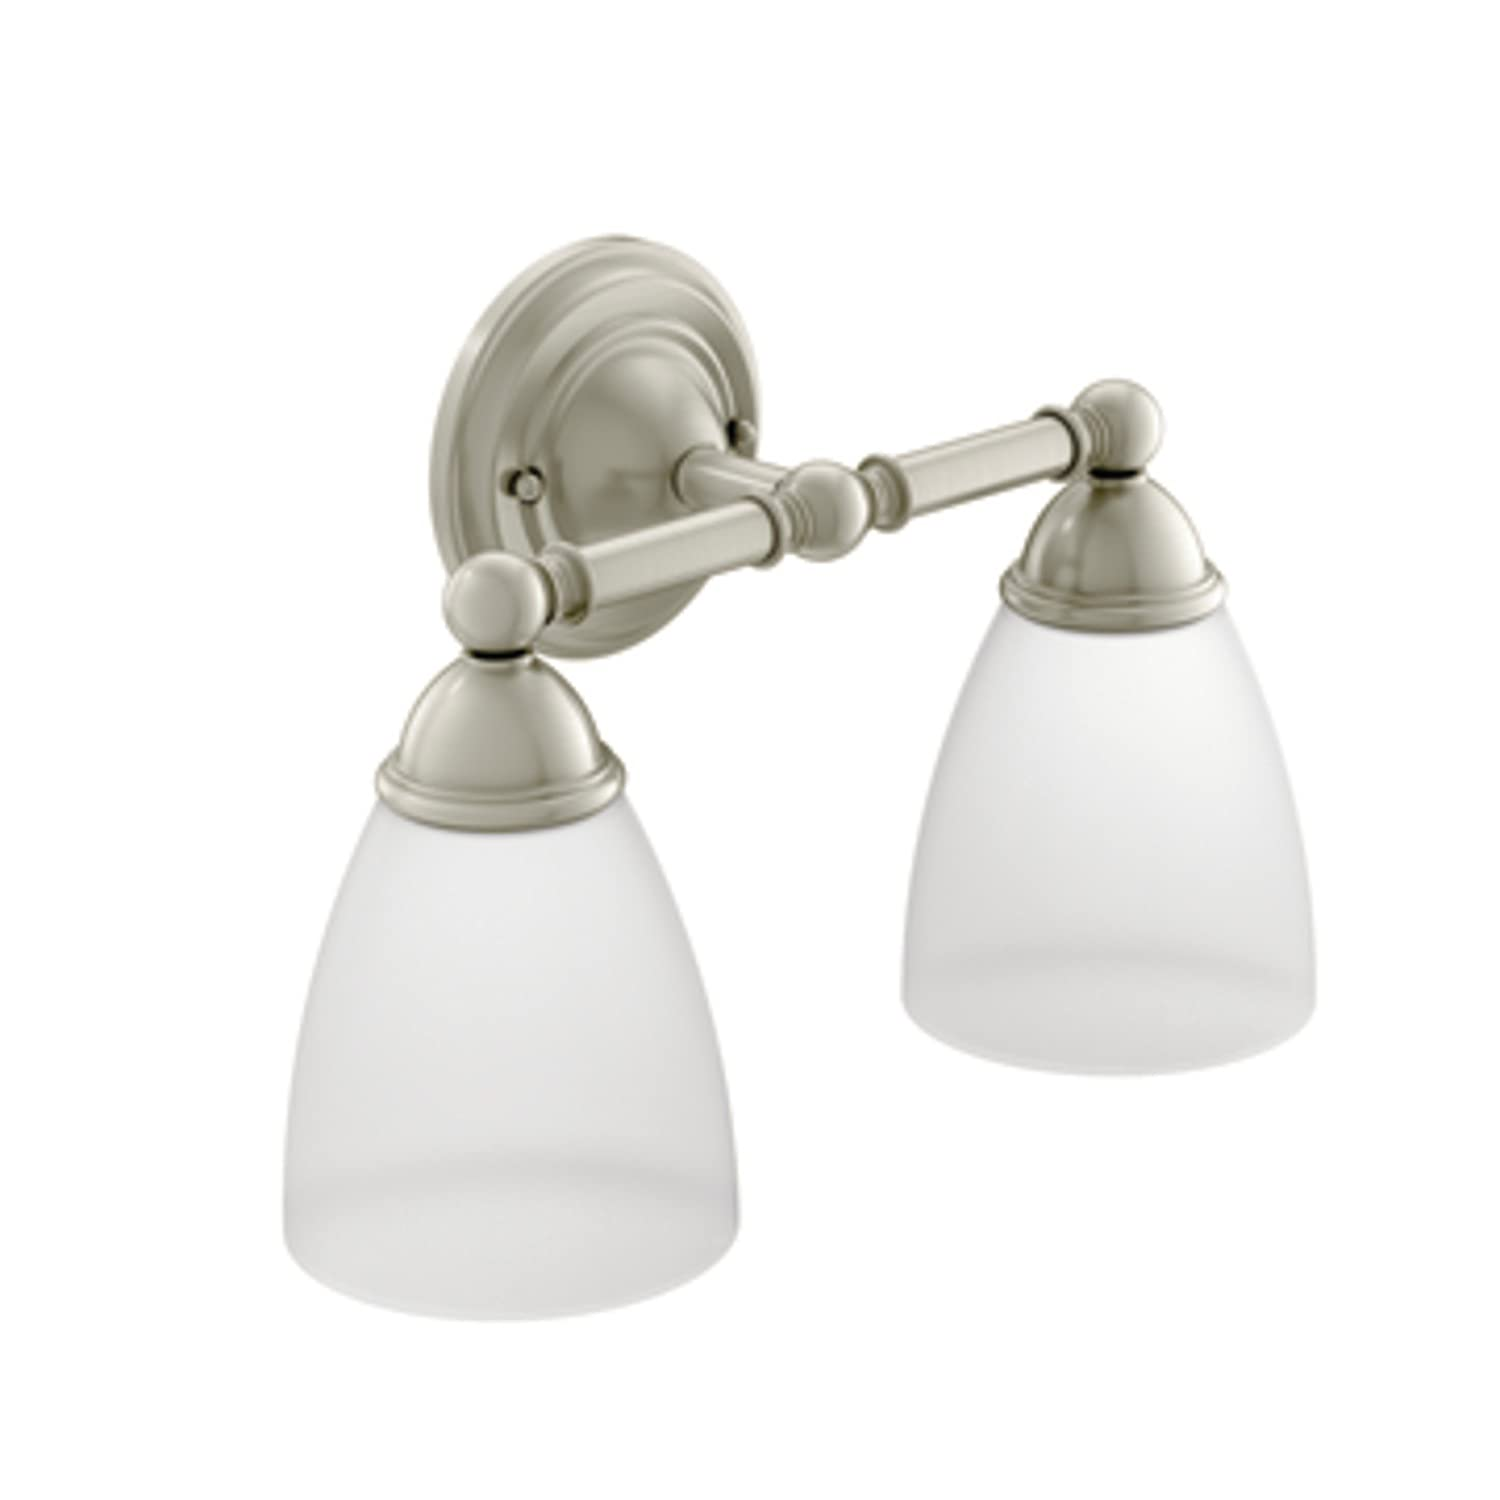 Moen YB2262BN Brantford Bath Lighting, Brushed Nickel   Bathroom Hardware    Amazon.com